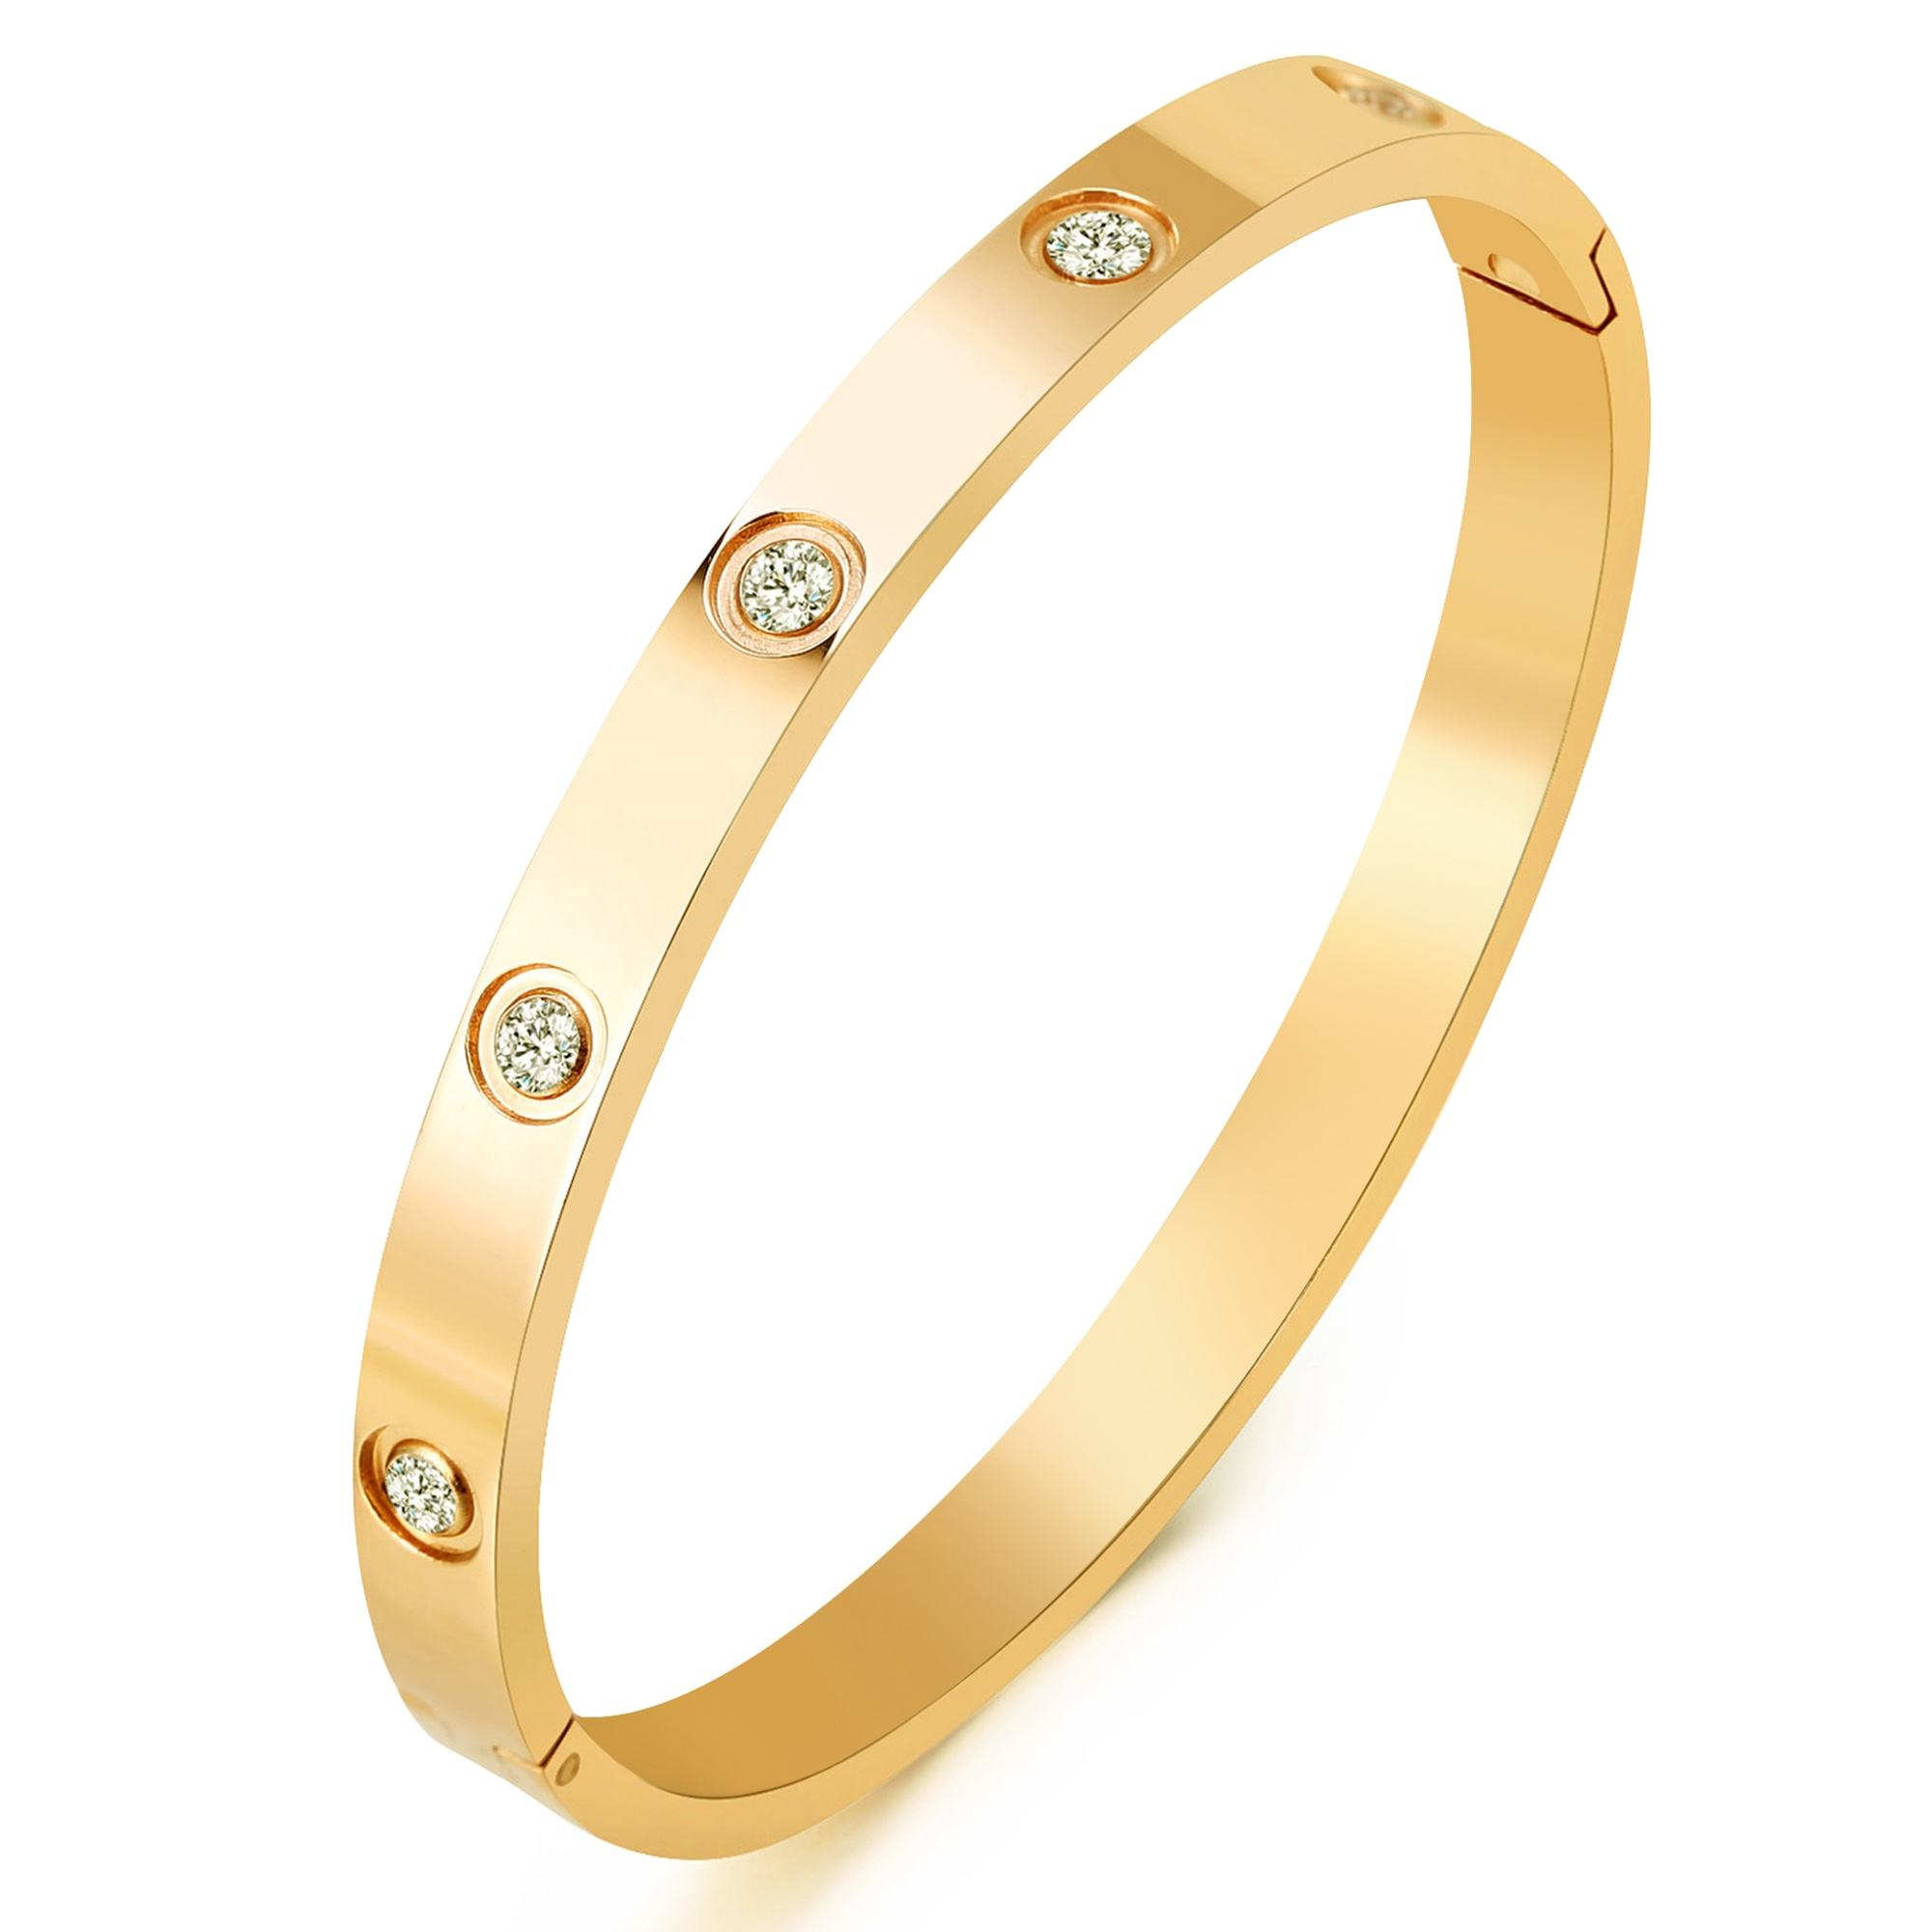 AD. Jewelry 18 K Gold Plated Bangle Bracelet CZ Stone Hinged Stainless Steel with Crystal Bangle for Women Size 6.7